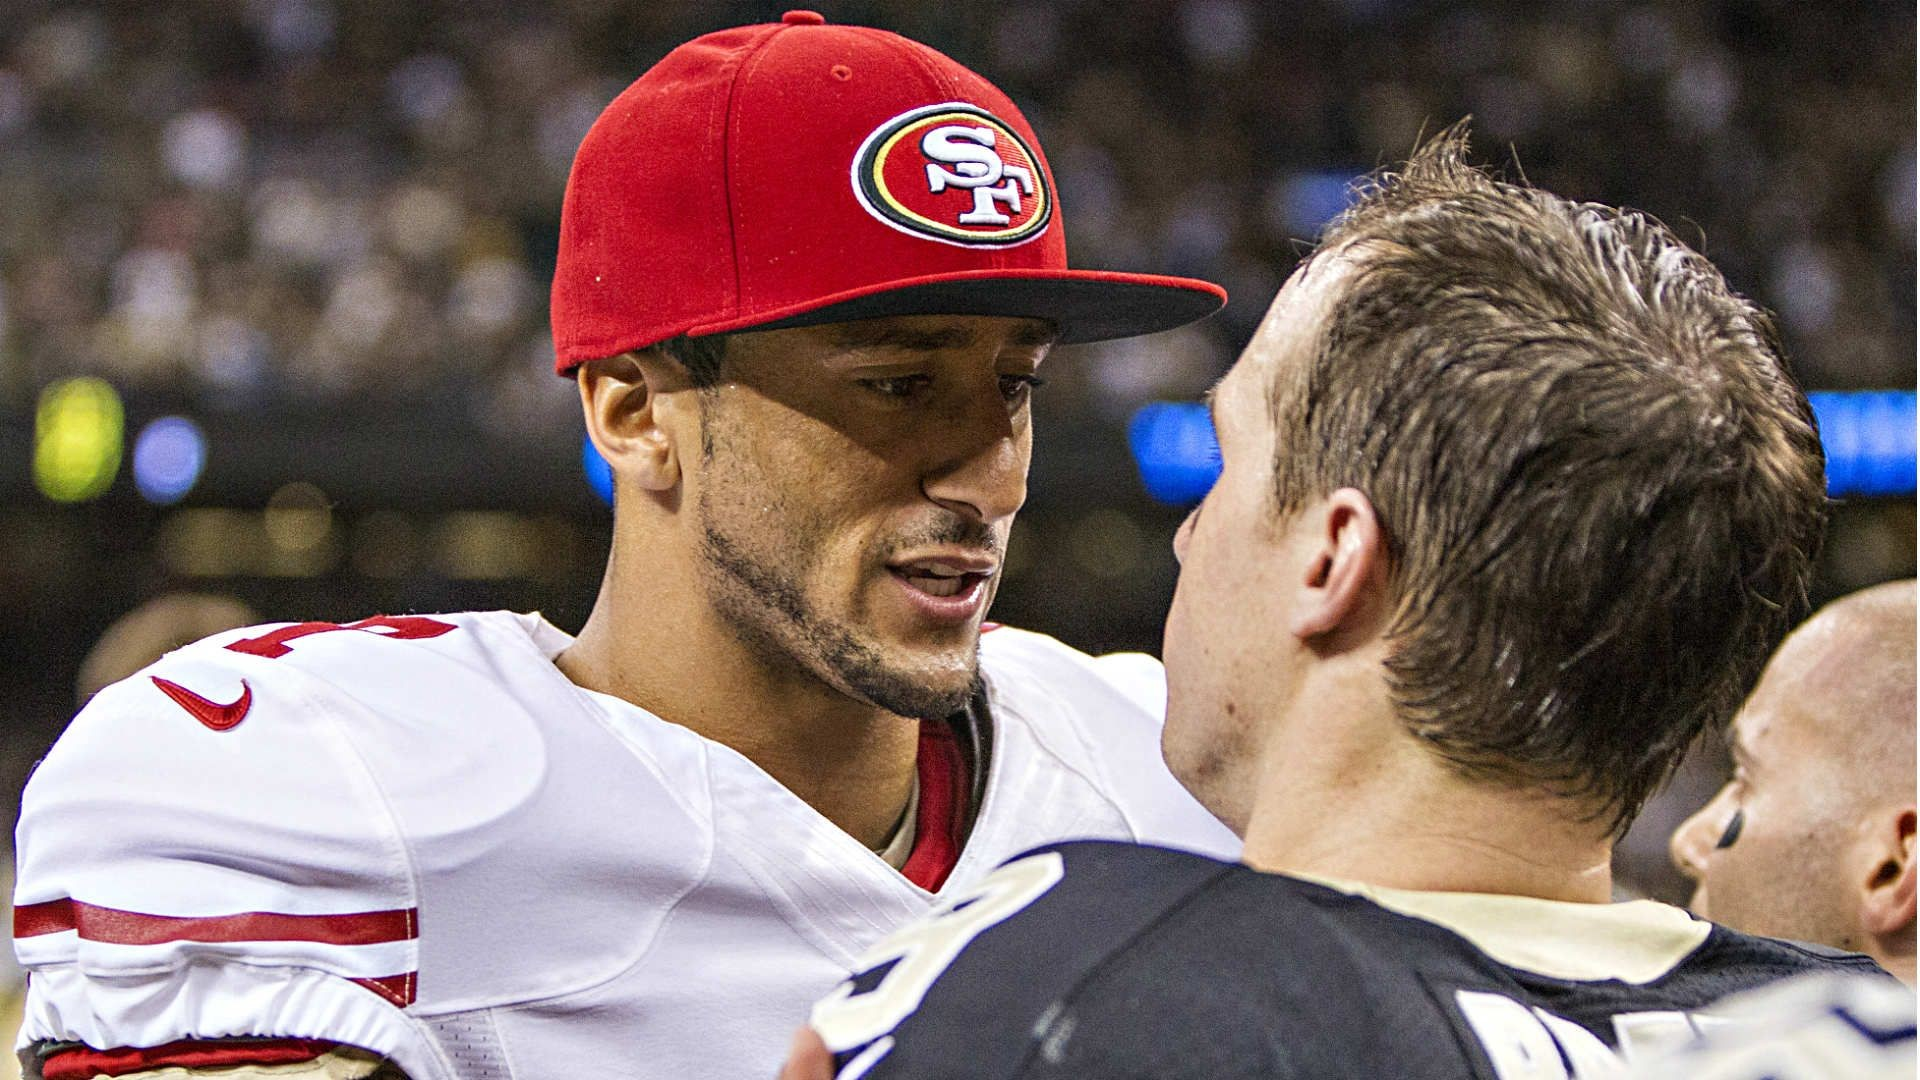 Drew Brees, Richard Sherman weigh in on Colin Kaepernick's anthem protest